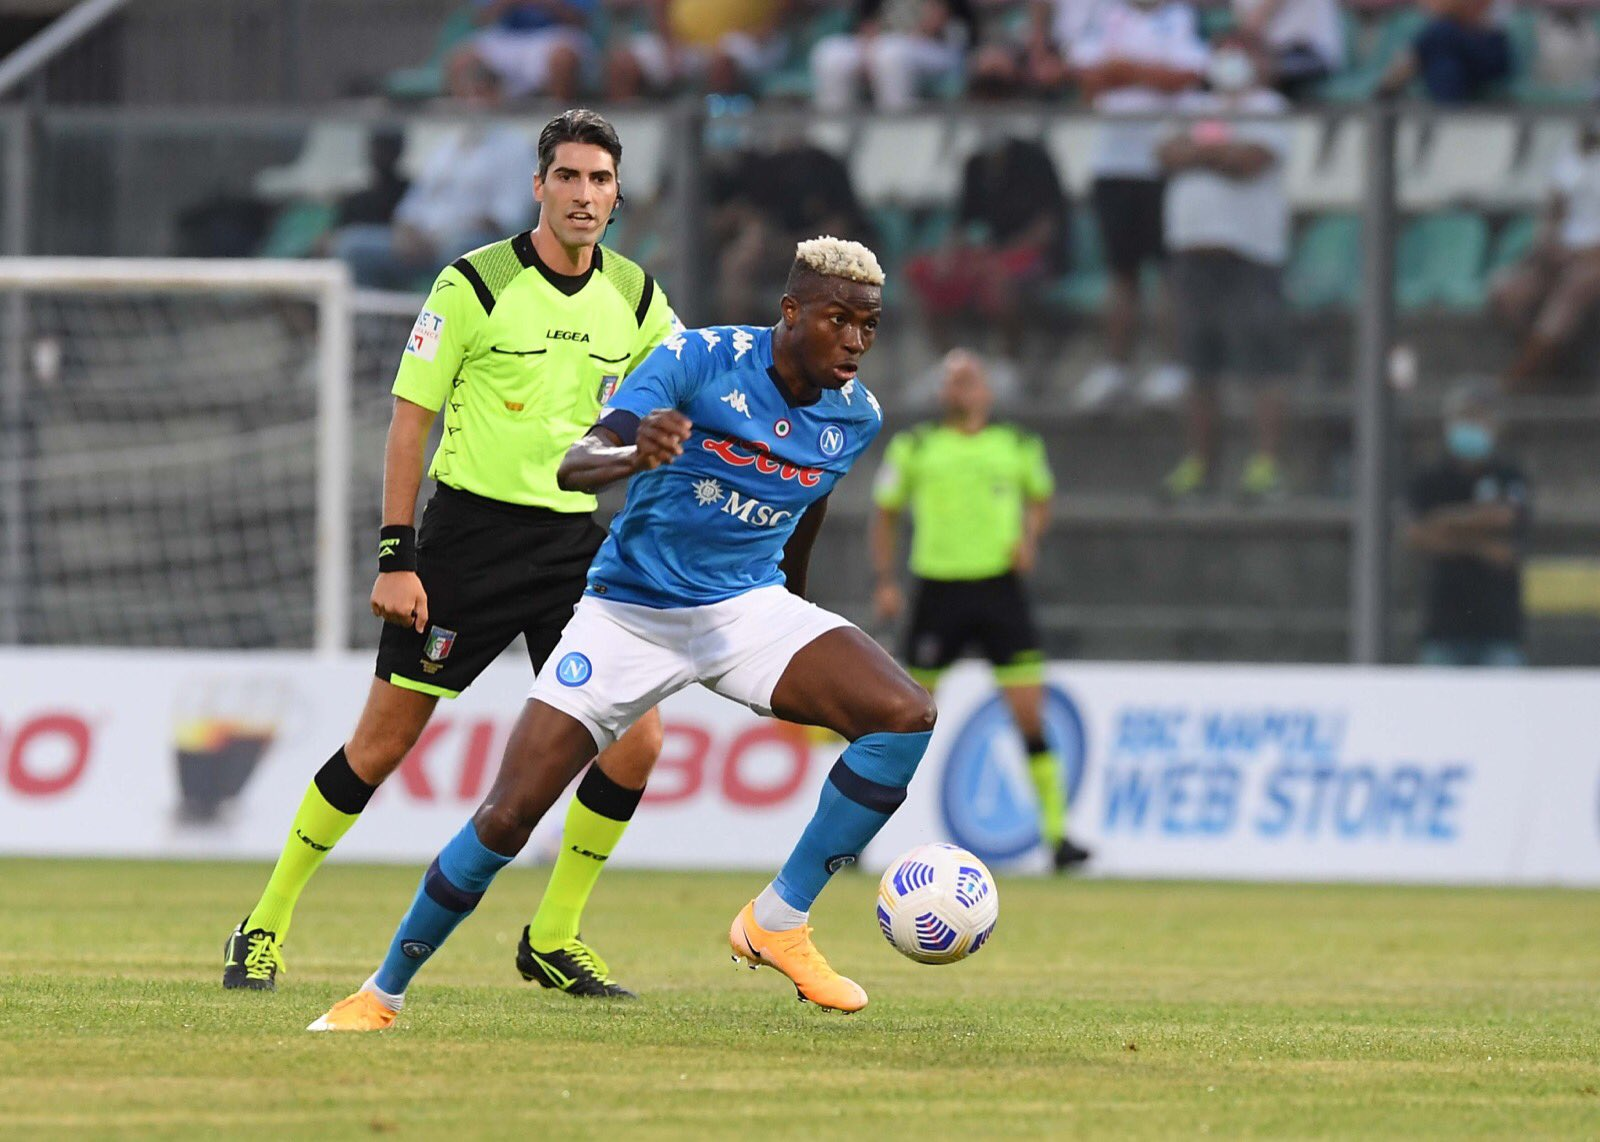 Pre-season: Osimhen Bags Hat-trick, Assist As Napoli Humilate Opponent 11-0